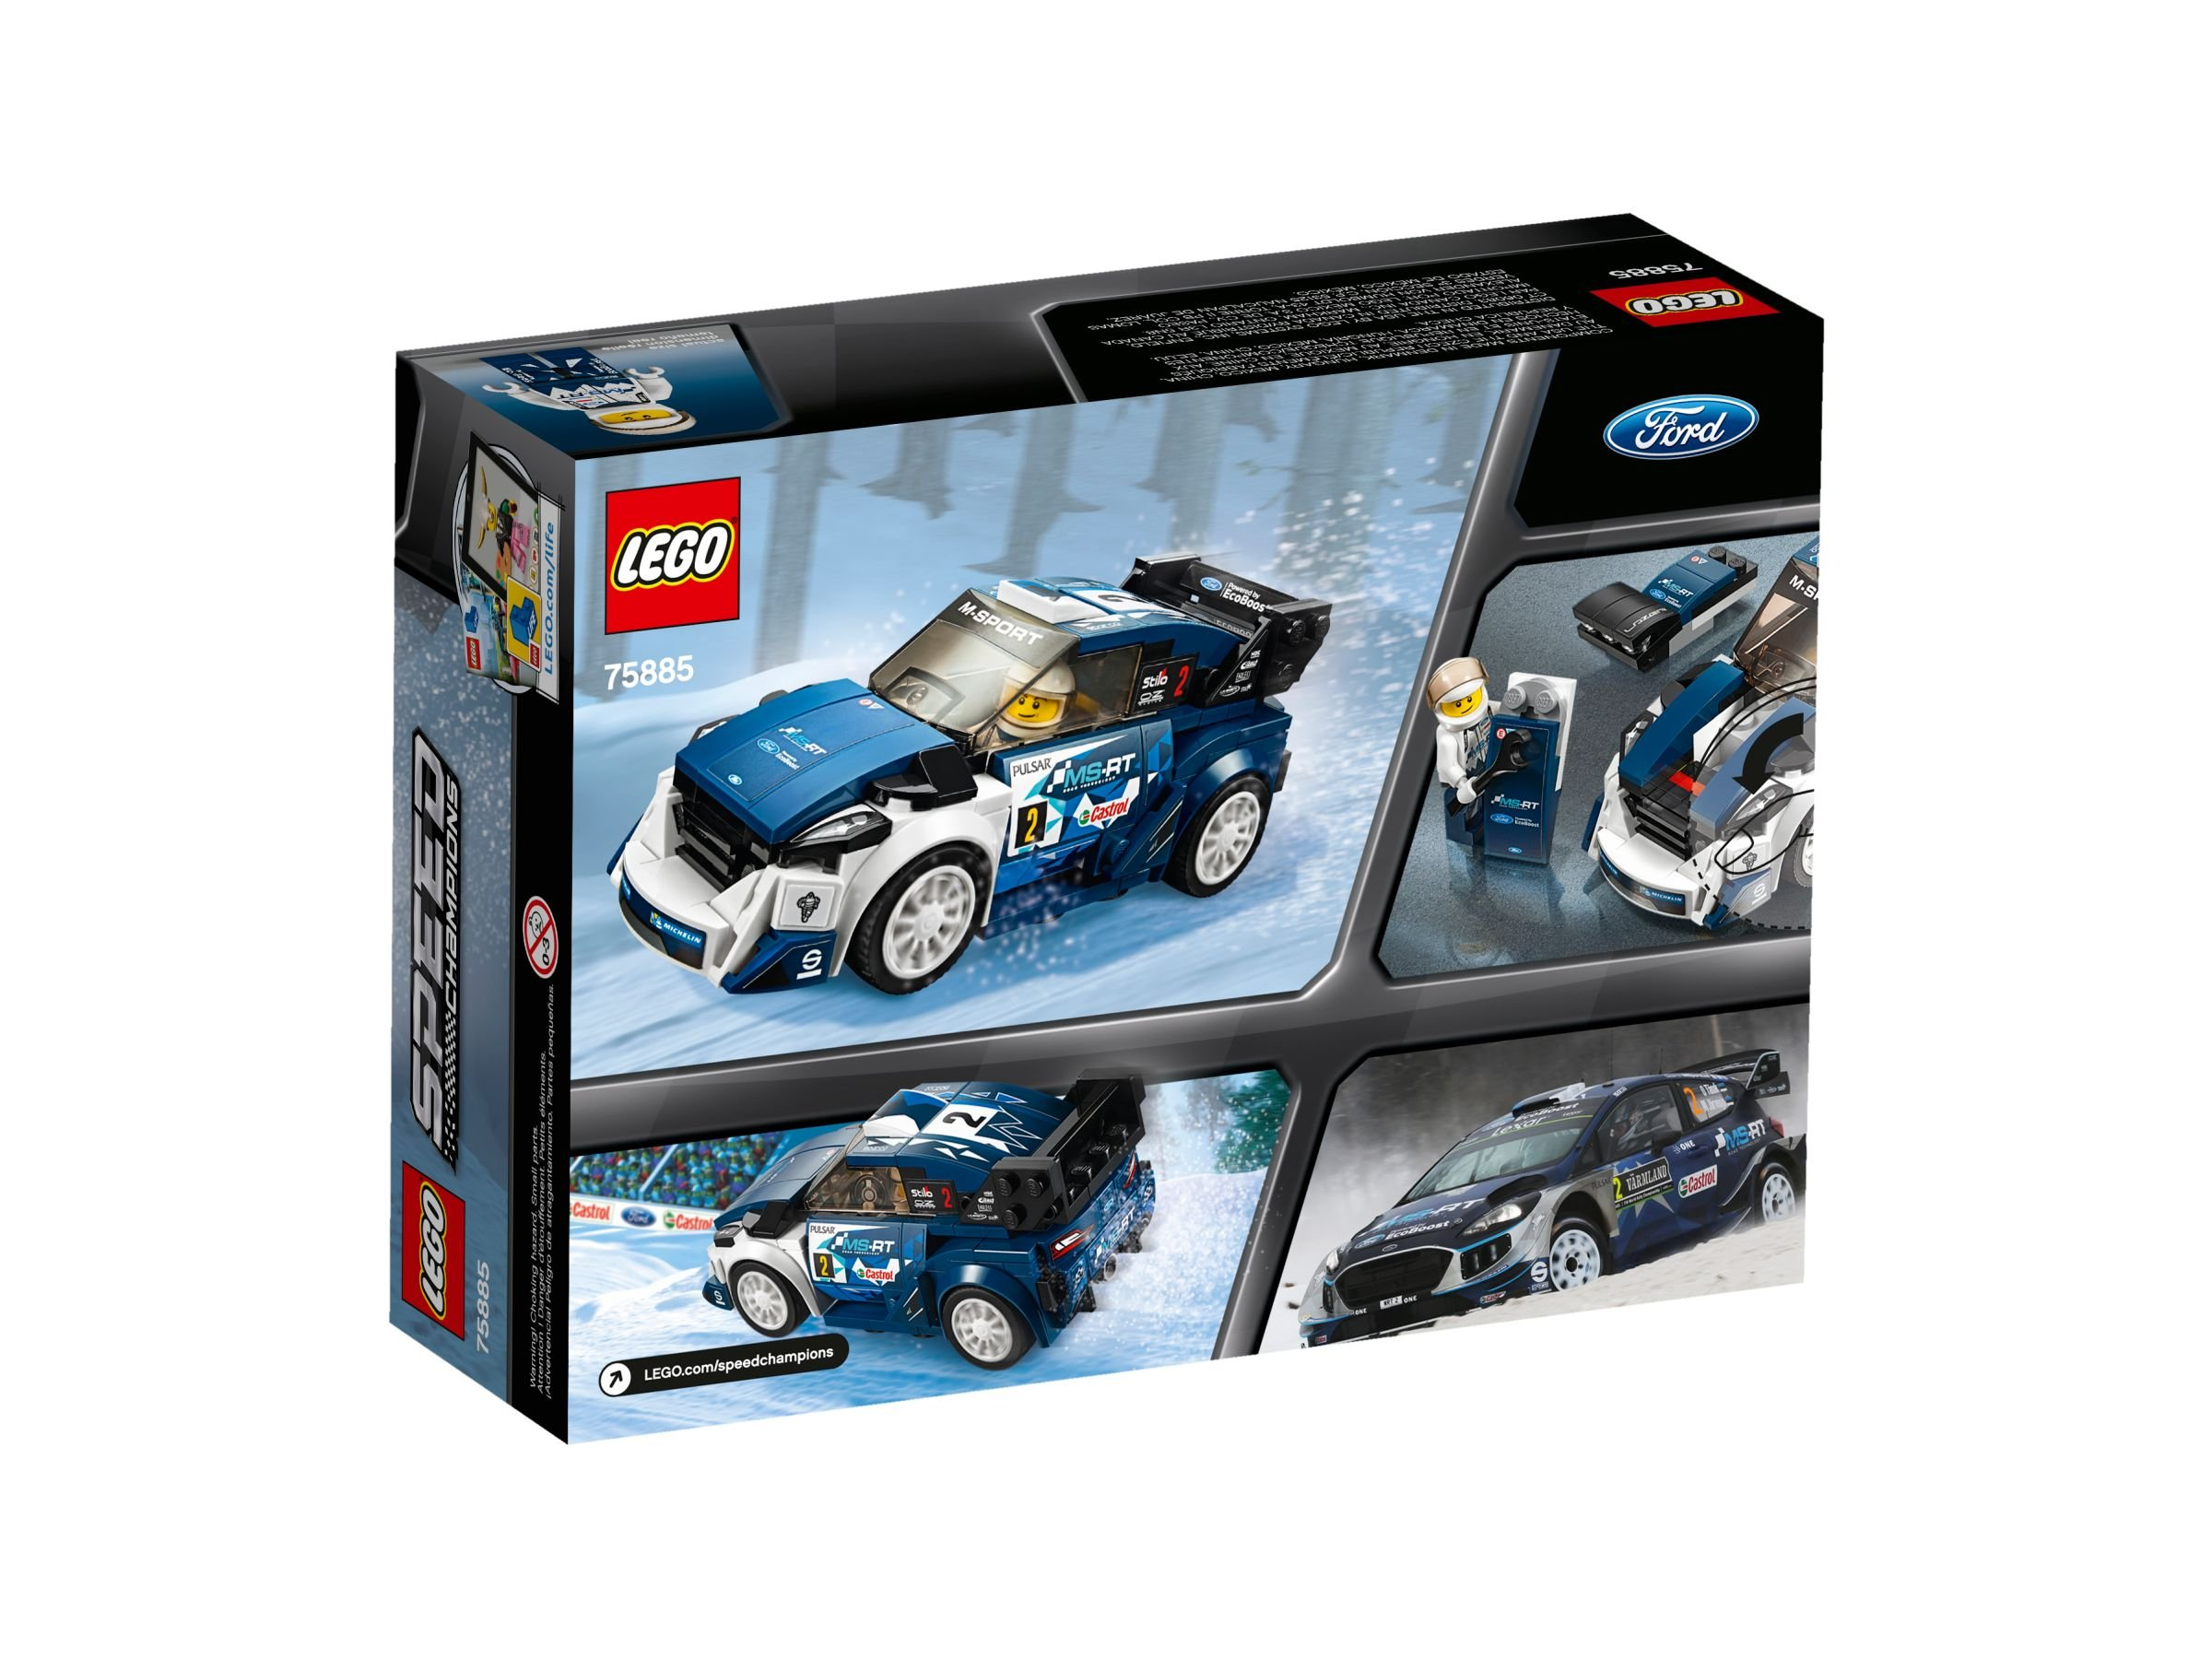 lego 75885 ford fiesta m sport wrc speed champions 2018 ab 10 99 27 gespart brickmerge. Black Bedroom Furniture Sets. Home Design Ideas